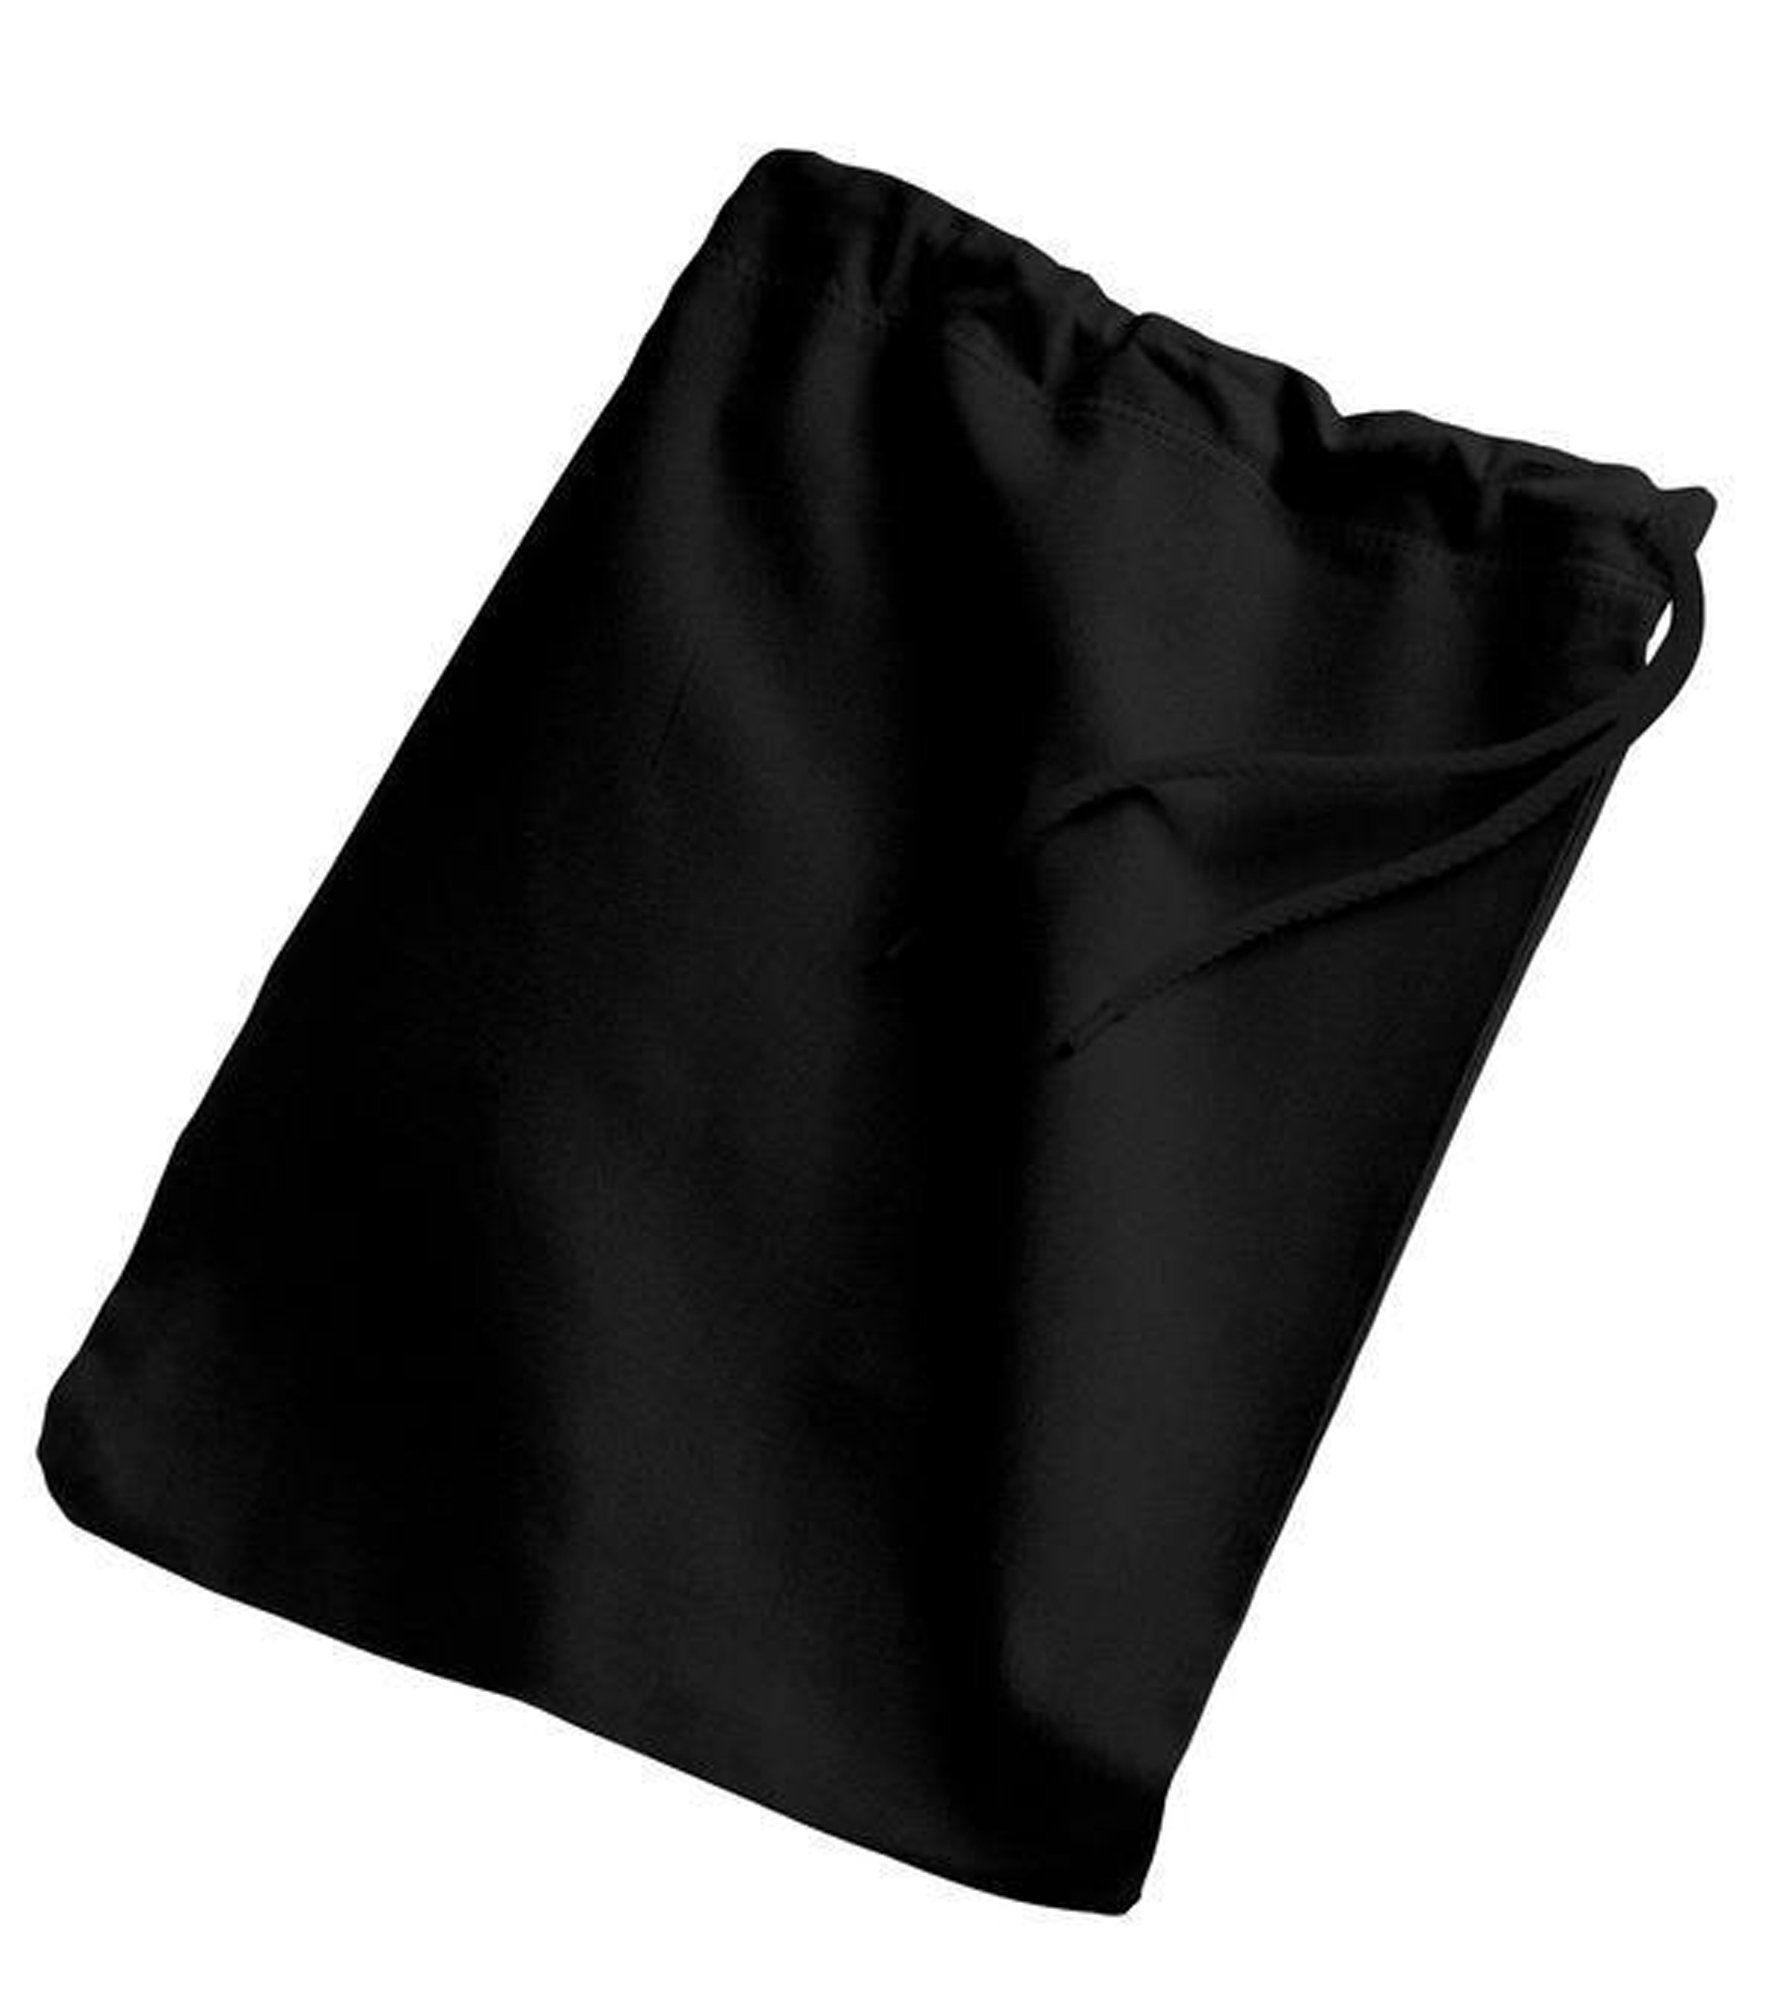 Pack of 12-100% Cotton Drawstring Shoe Bags in Bulk with Matching Color Drawstring Closure - 15.75''H x 11''W - SBG10 - Art and Craft Customizable Wholesale Drawstring Bags in Bulk (Black)